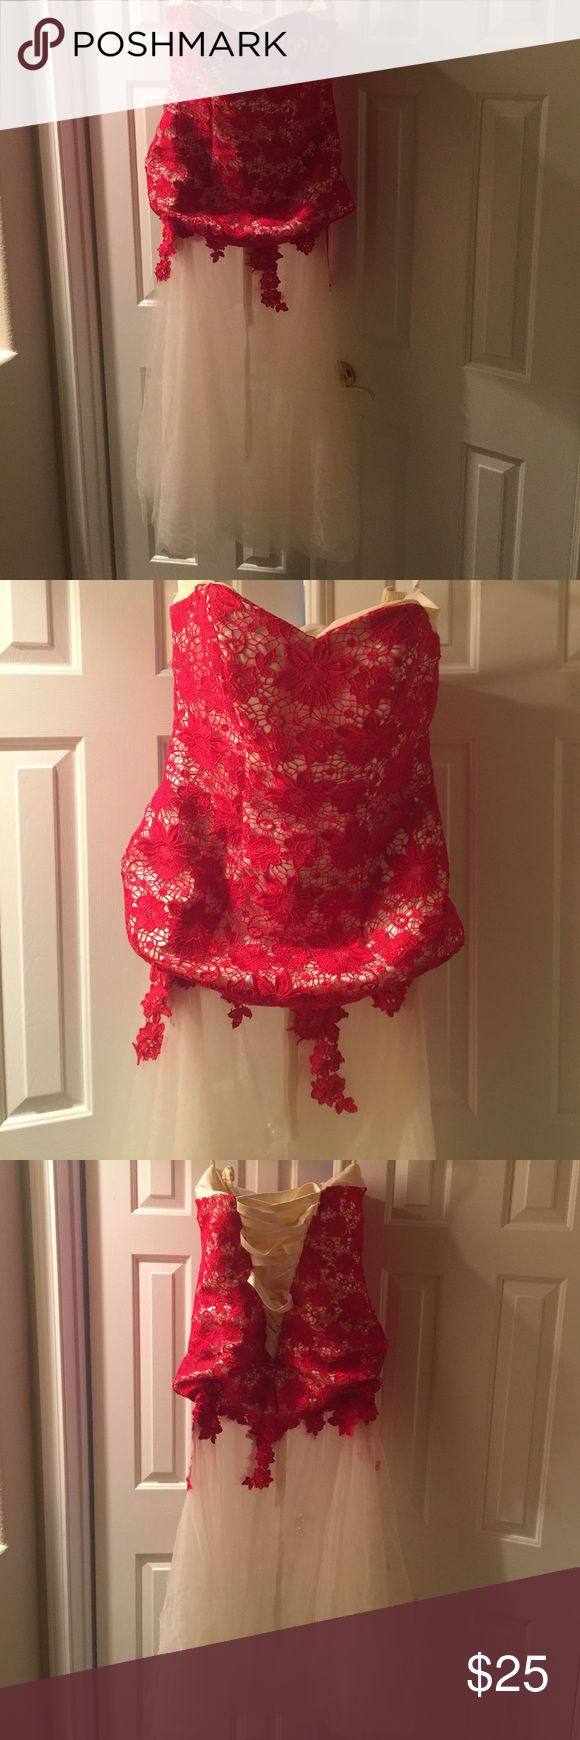 Cute Red Lace Strapless Corset Gown size 14 or 1X New - NEVER WORN!!! Beautiful Strapless Corset Gown. Size 14. Corset style will fit up to size 16. Gorgeous gown for the Holidays! Dresses Strapless